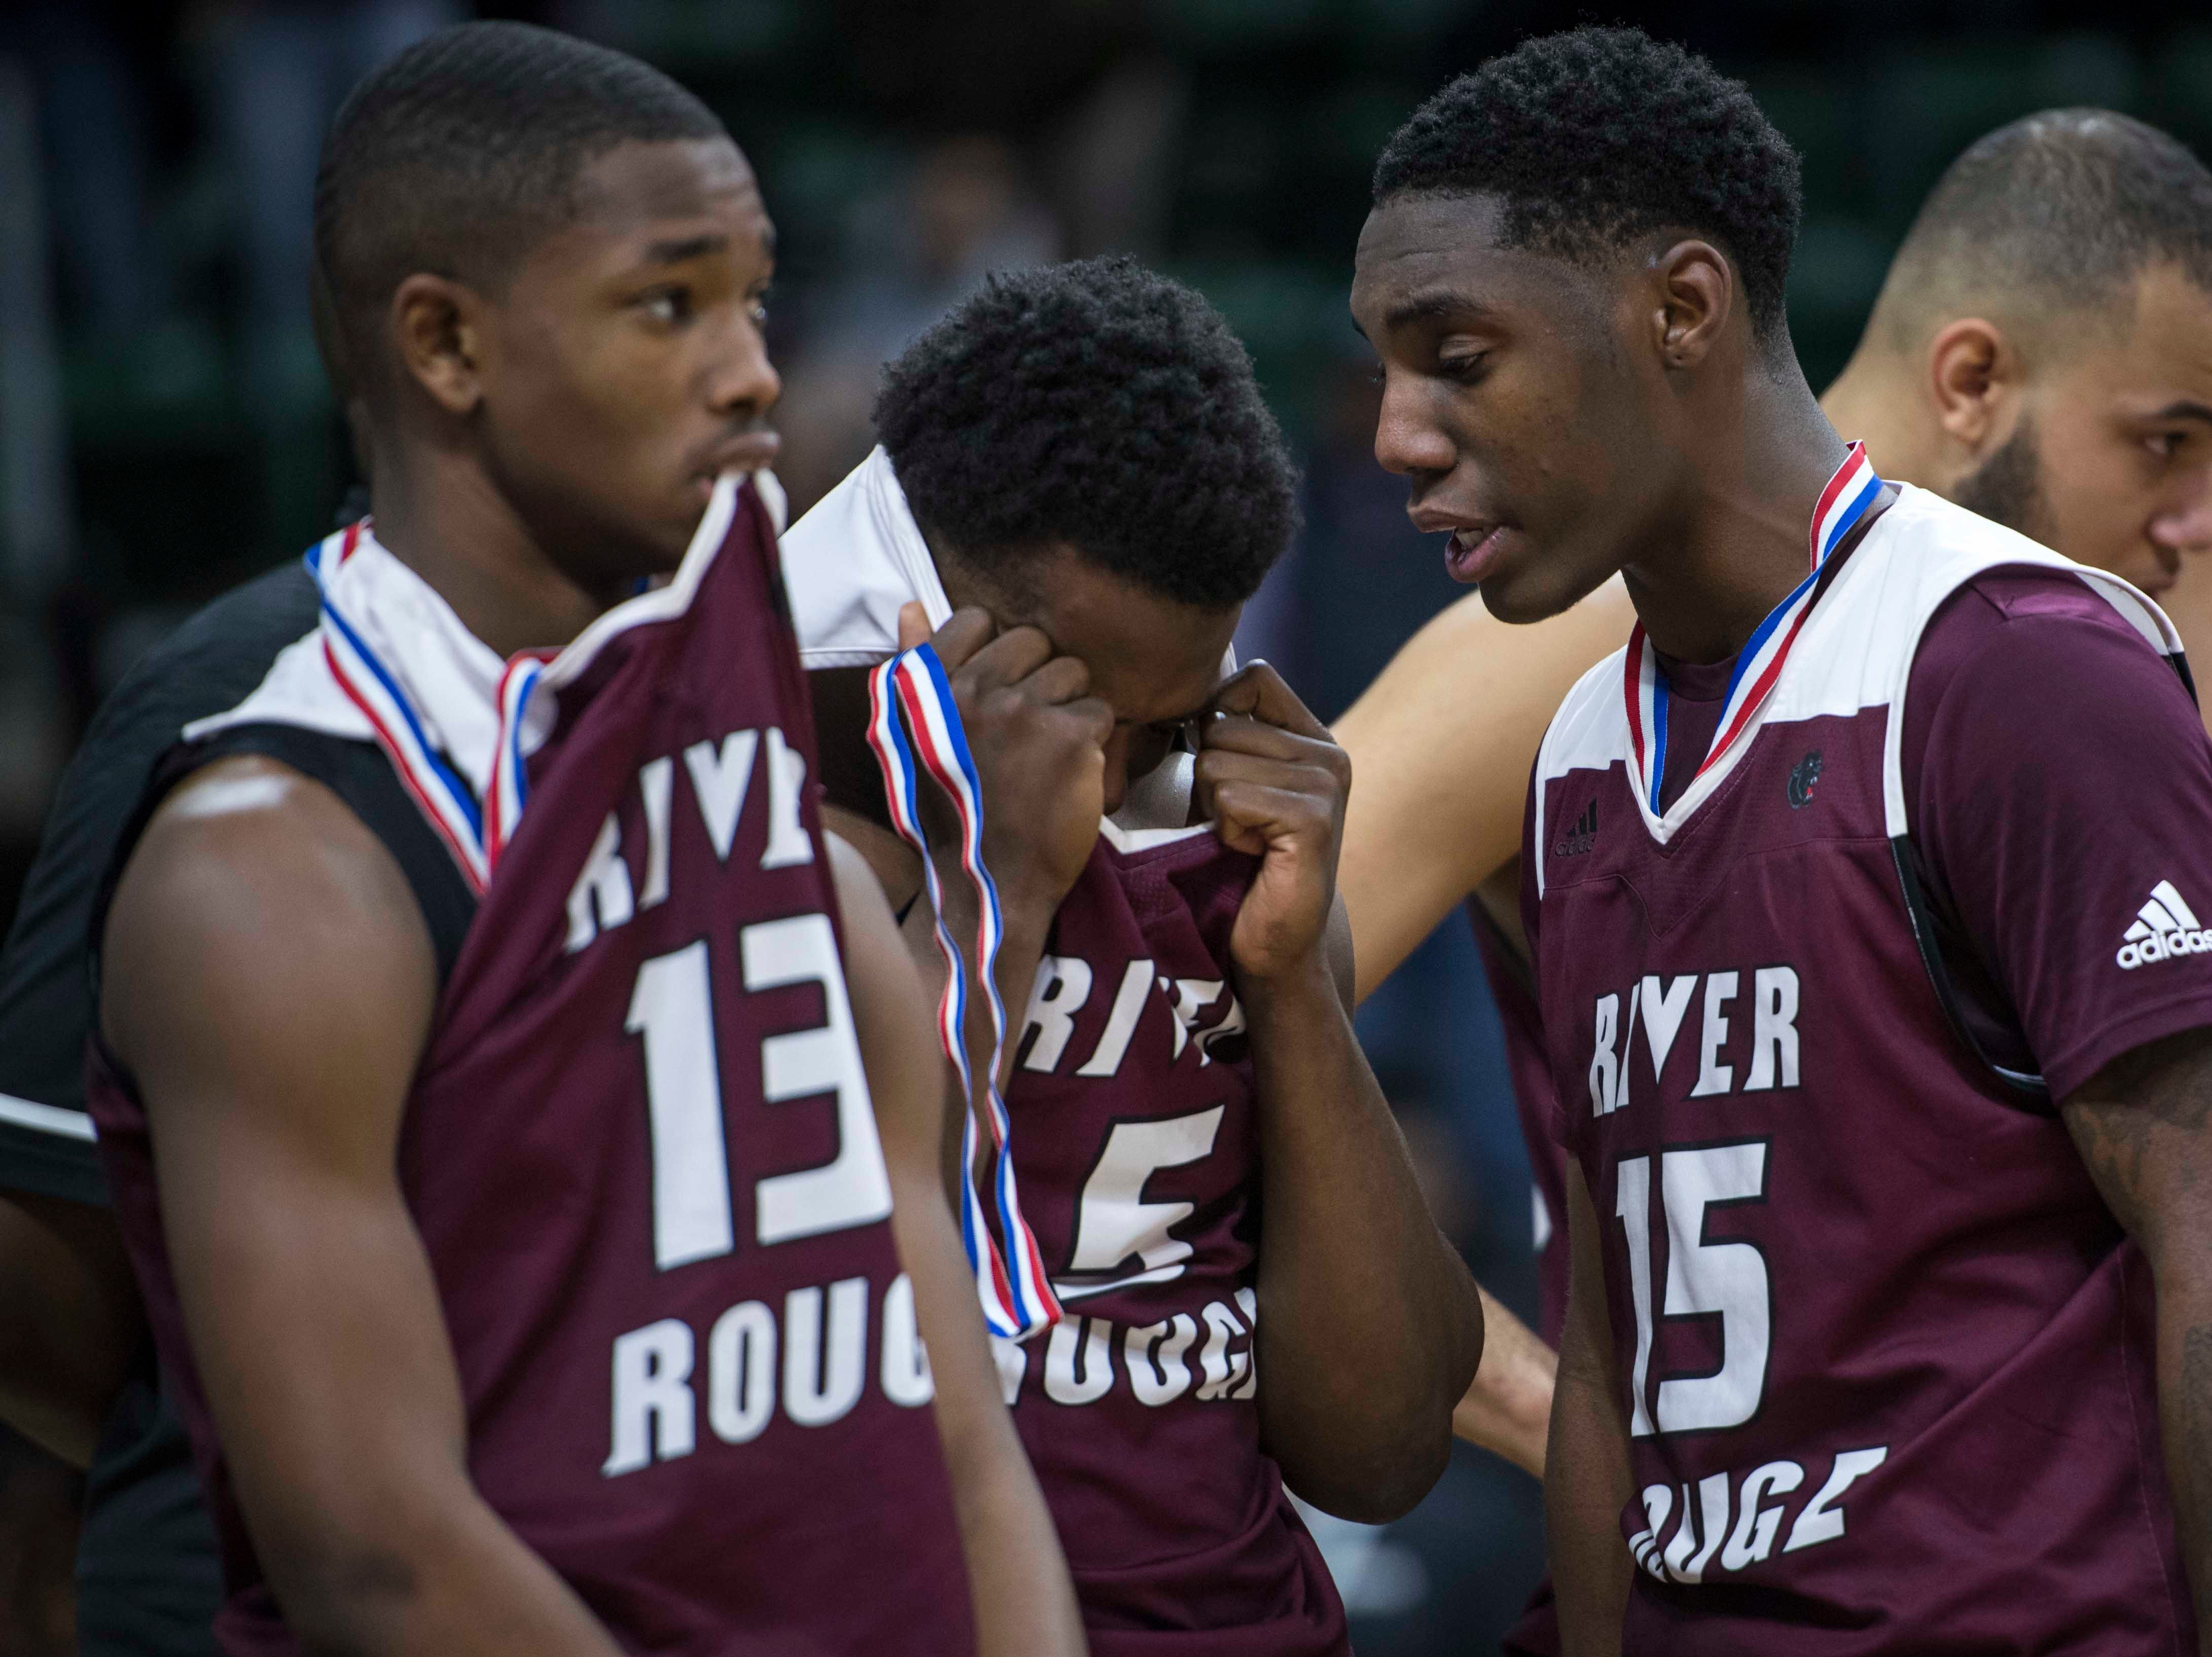 River Rouge's Jalen Holly, left, looks on while teammate Kamal Hadden comforts Jason Norton, right, after their team lost the game.